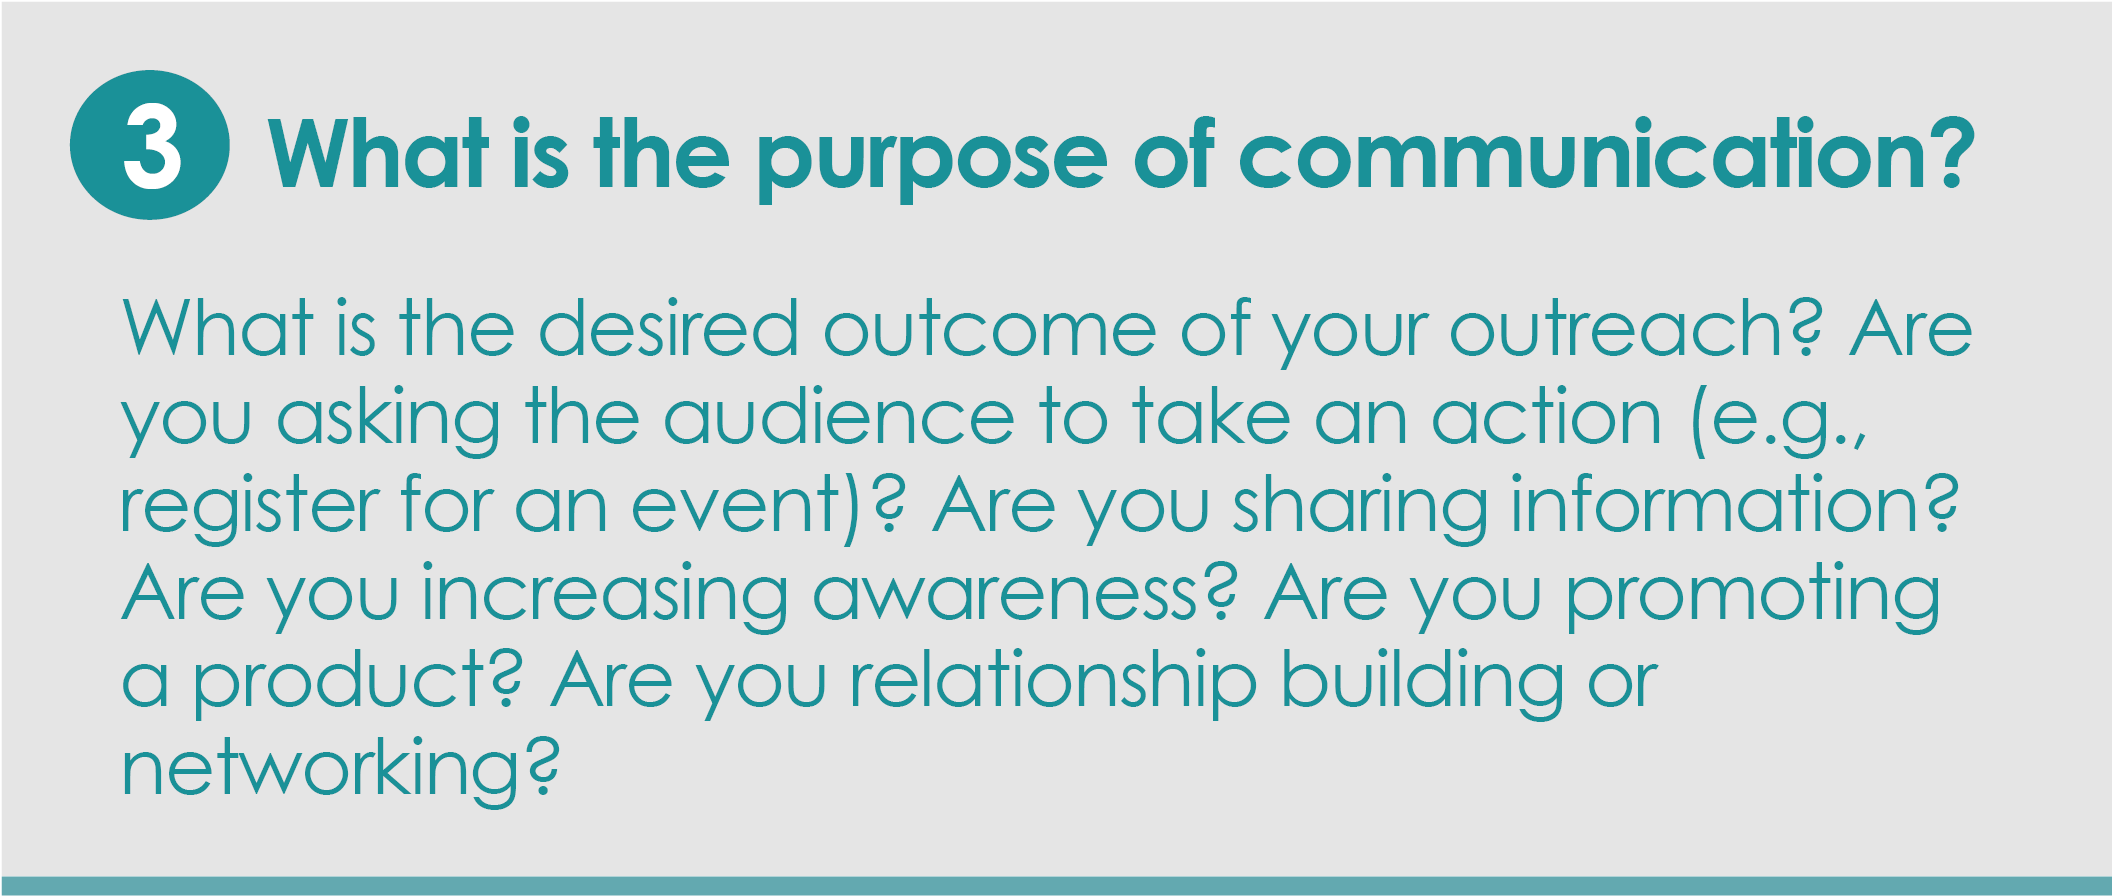 Step 3: What is the purpose of communication?What is the desired outcome of your outreach? Are you asking the audience to take an action (e.g., register for an event)? Are you sharing information? Are you increasing awareness? Are you promoting a product? Are you relationship building or networking?